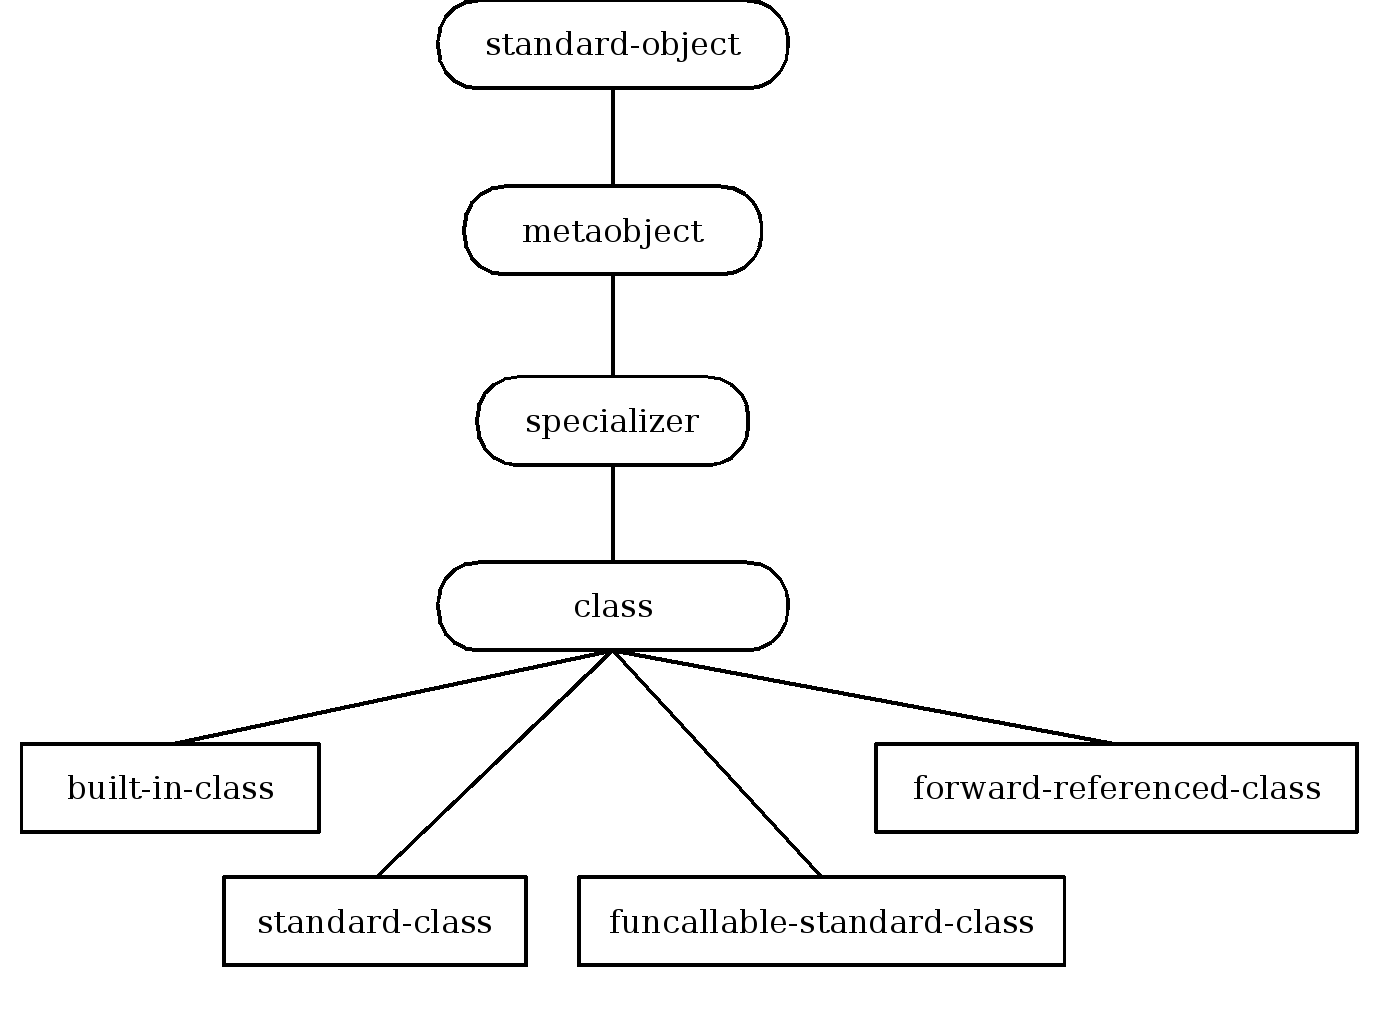 Inheritance structure of class metaobject classes